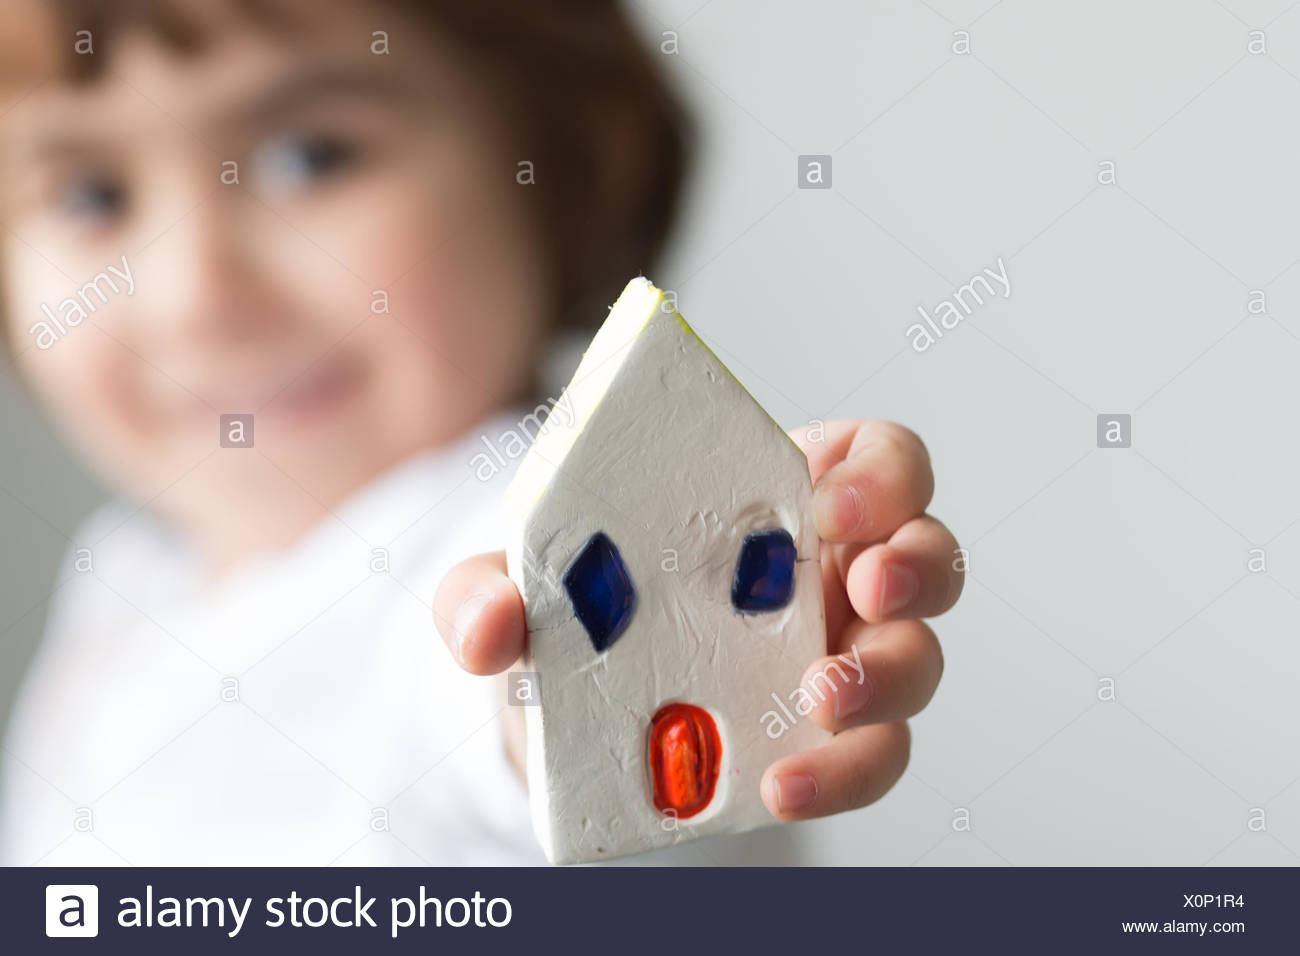 Boy showing off his handmade house - Stock Image